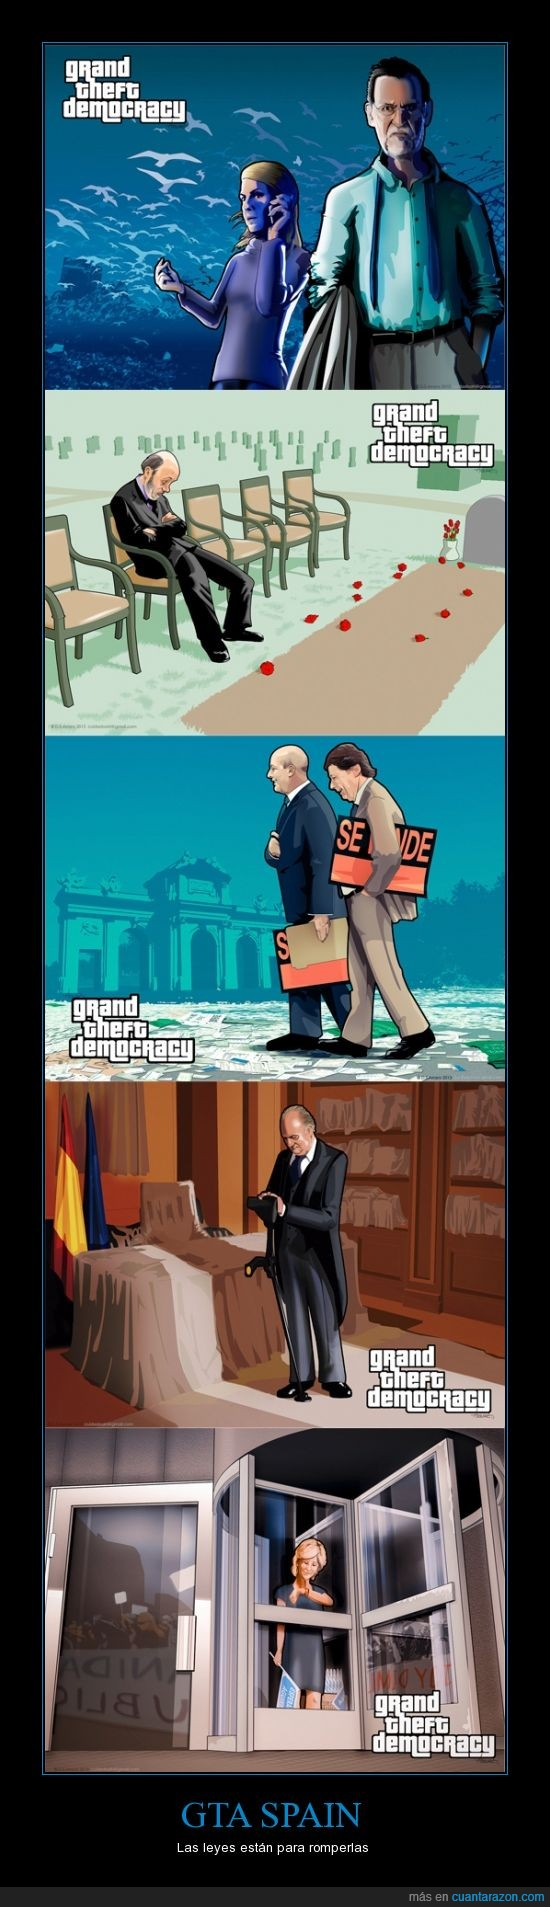 aguirre,cospedal,daniel s,grand theft auto,grand theft democracy,rajoy,videojuego